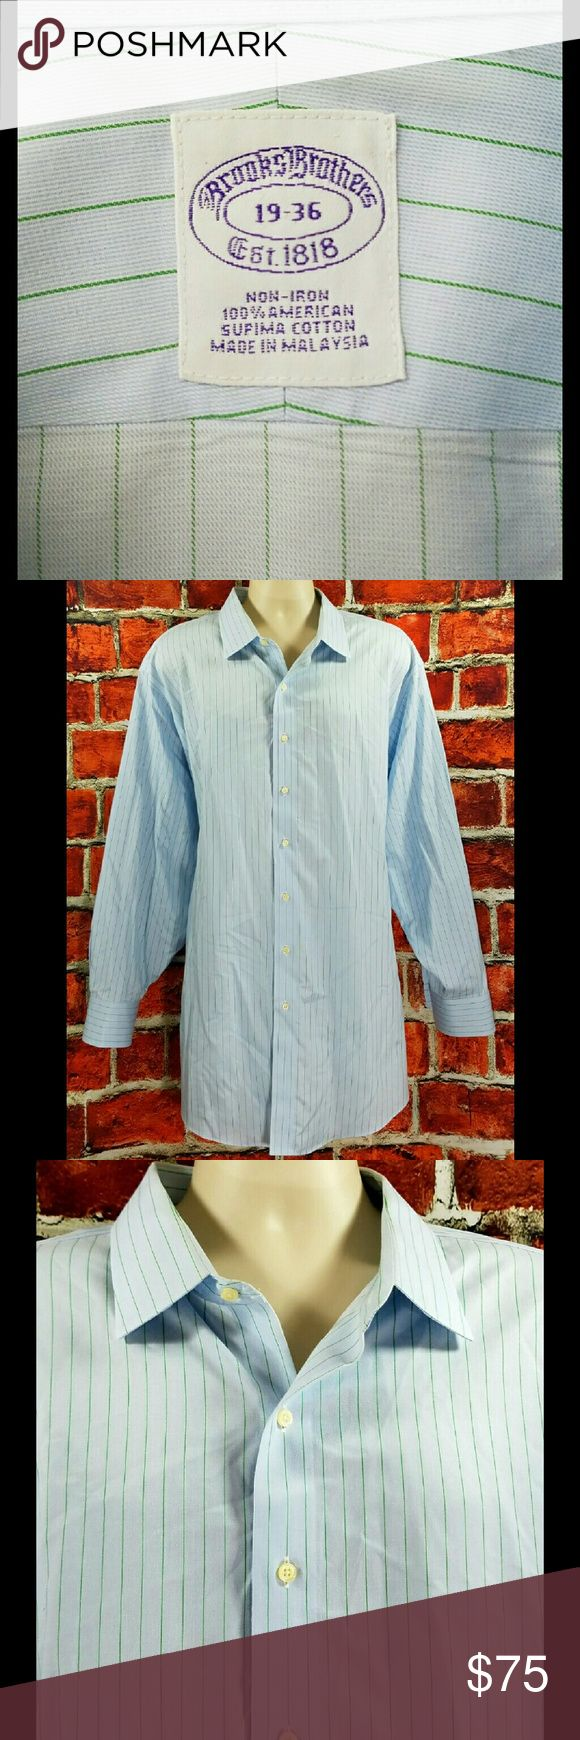 Brooks Brothers Big & Tall Dress Shirt 3XL 19-36 Brooks Brothers Classic Fit Non Iron Supima Cotton Dress Shirt Size: 3XL 19-36  About this item:  Excellent to Mint Condition 100% American Supima Cotton Non-Iron Light Blue & Green Striped  Size: 19-36 Across Chest: 30 Length: 36 Sleeve: 25 Brooks Brothers Shirts Dress Shirts